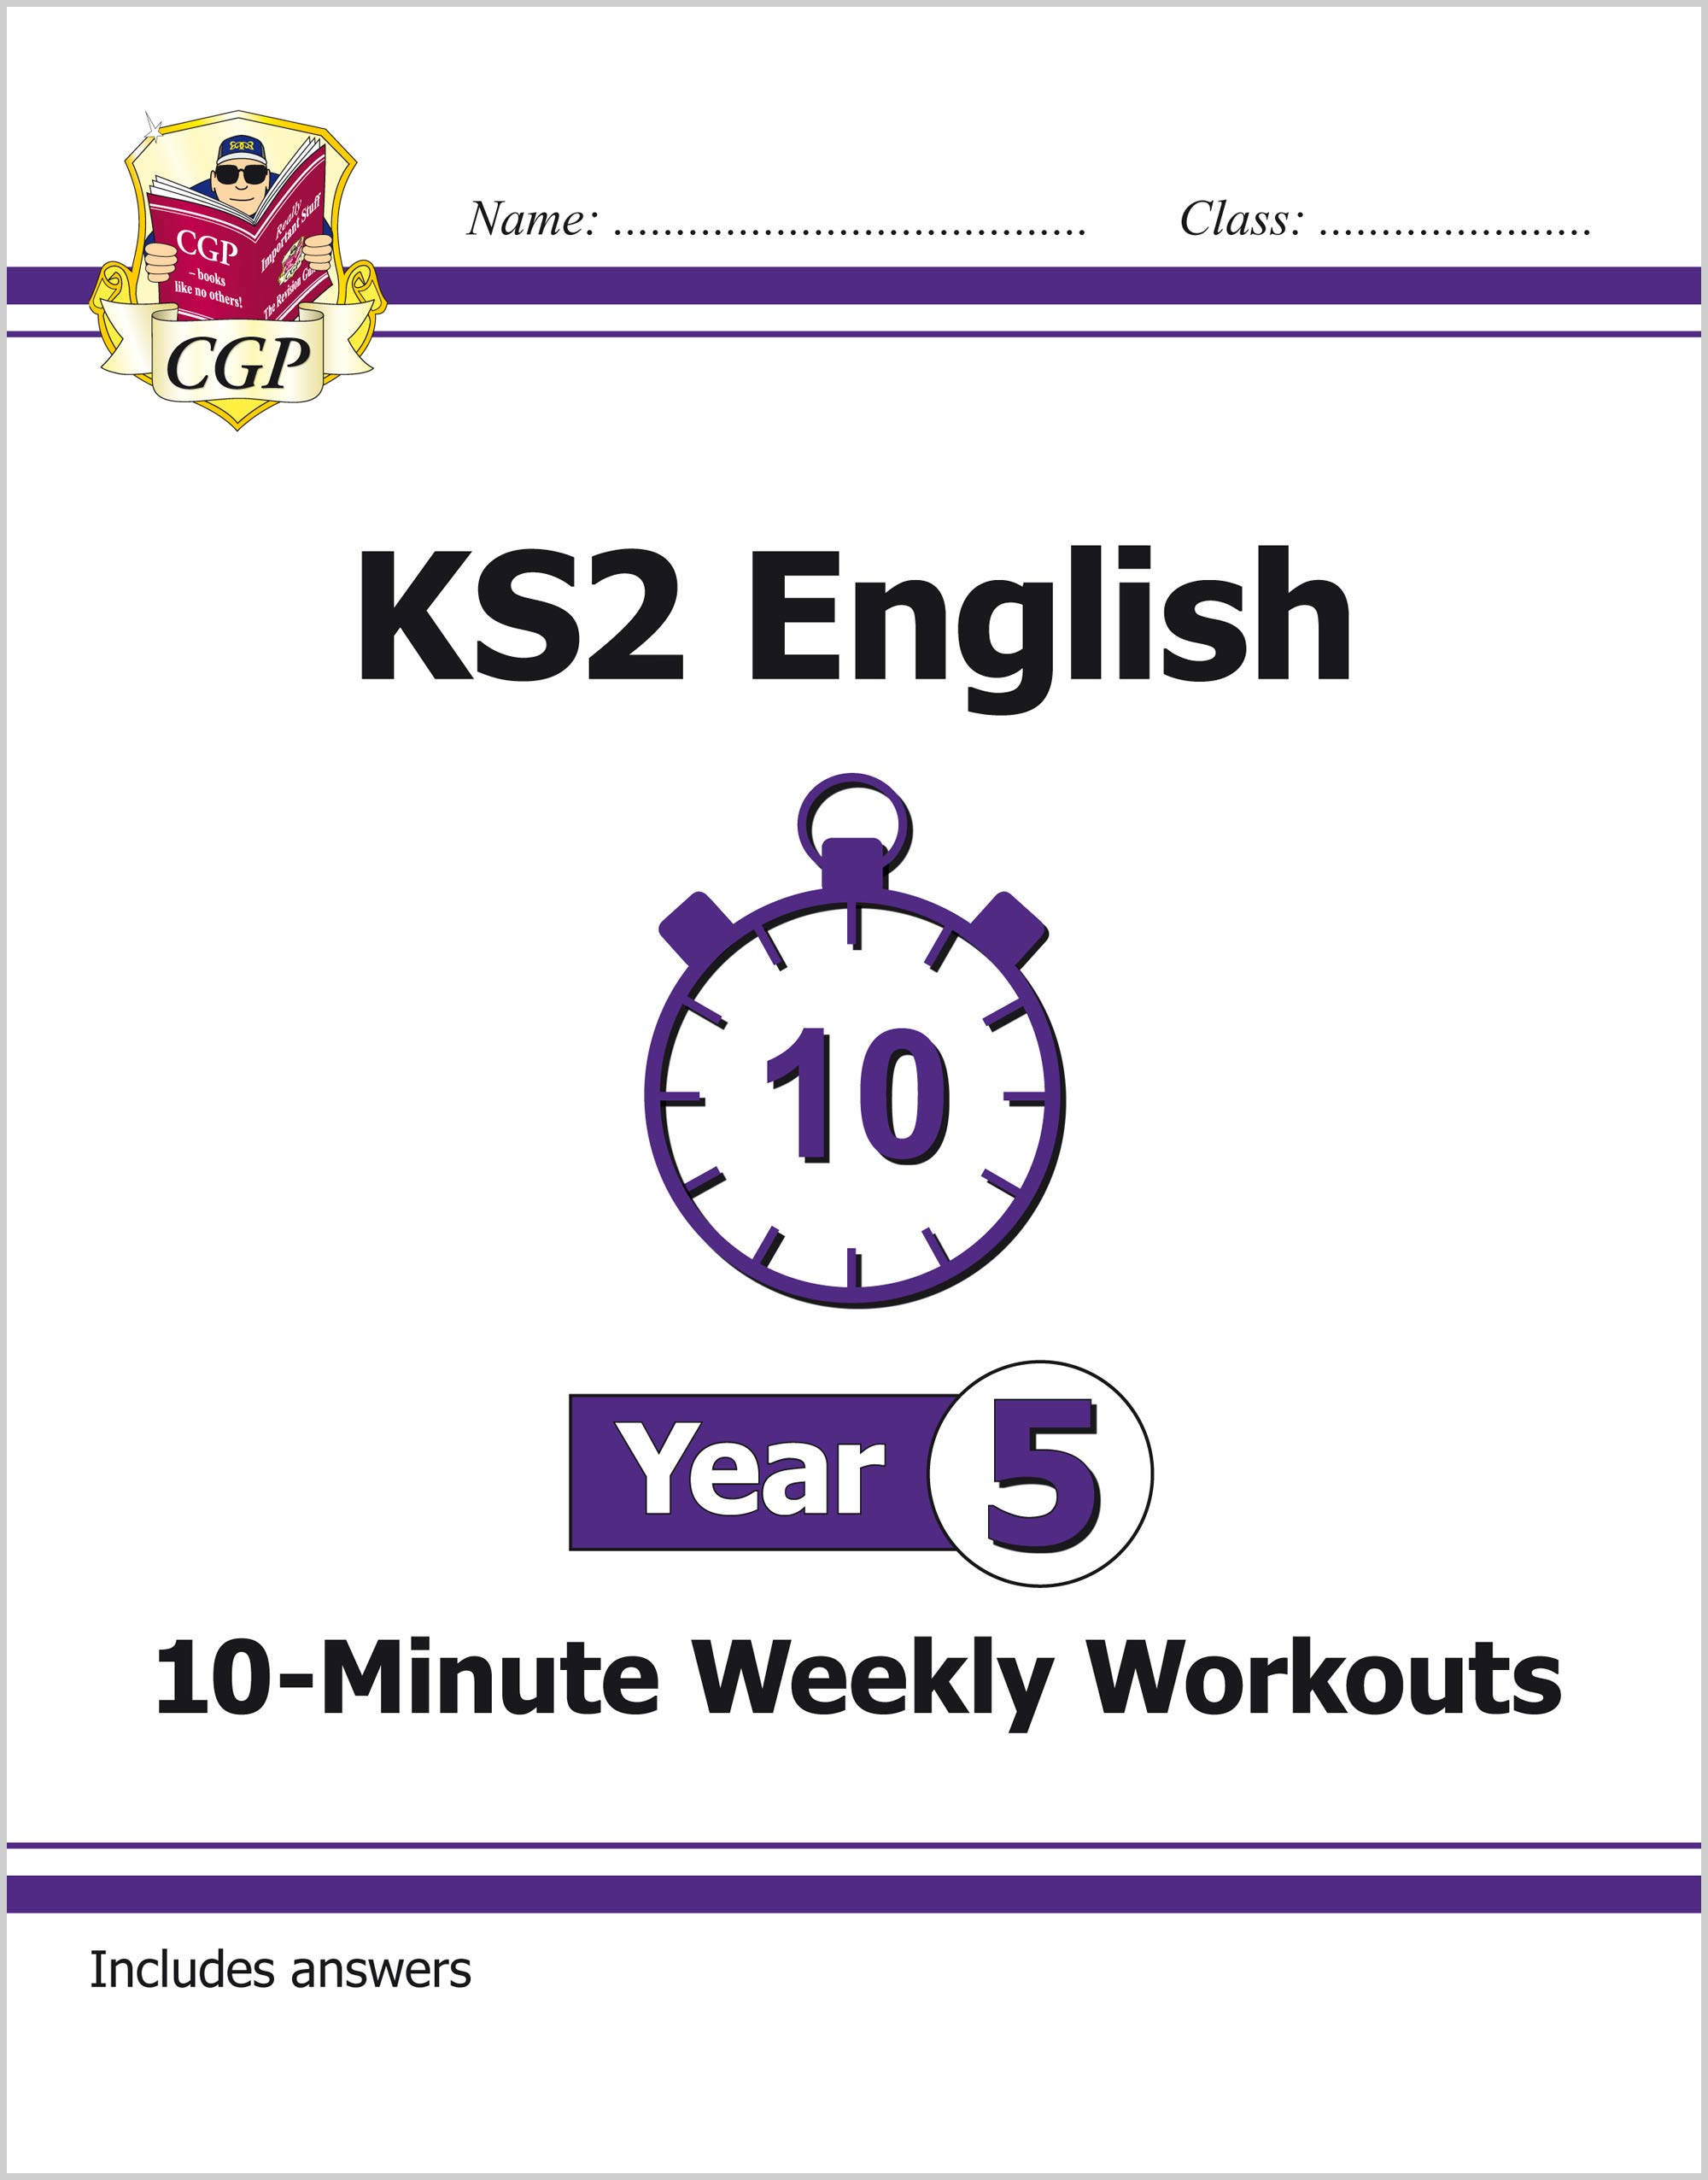 E5XW21 - New KS2 English 10-Minute Weekly Workouts - Year 5